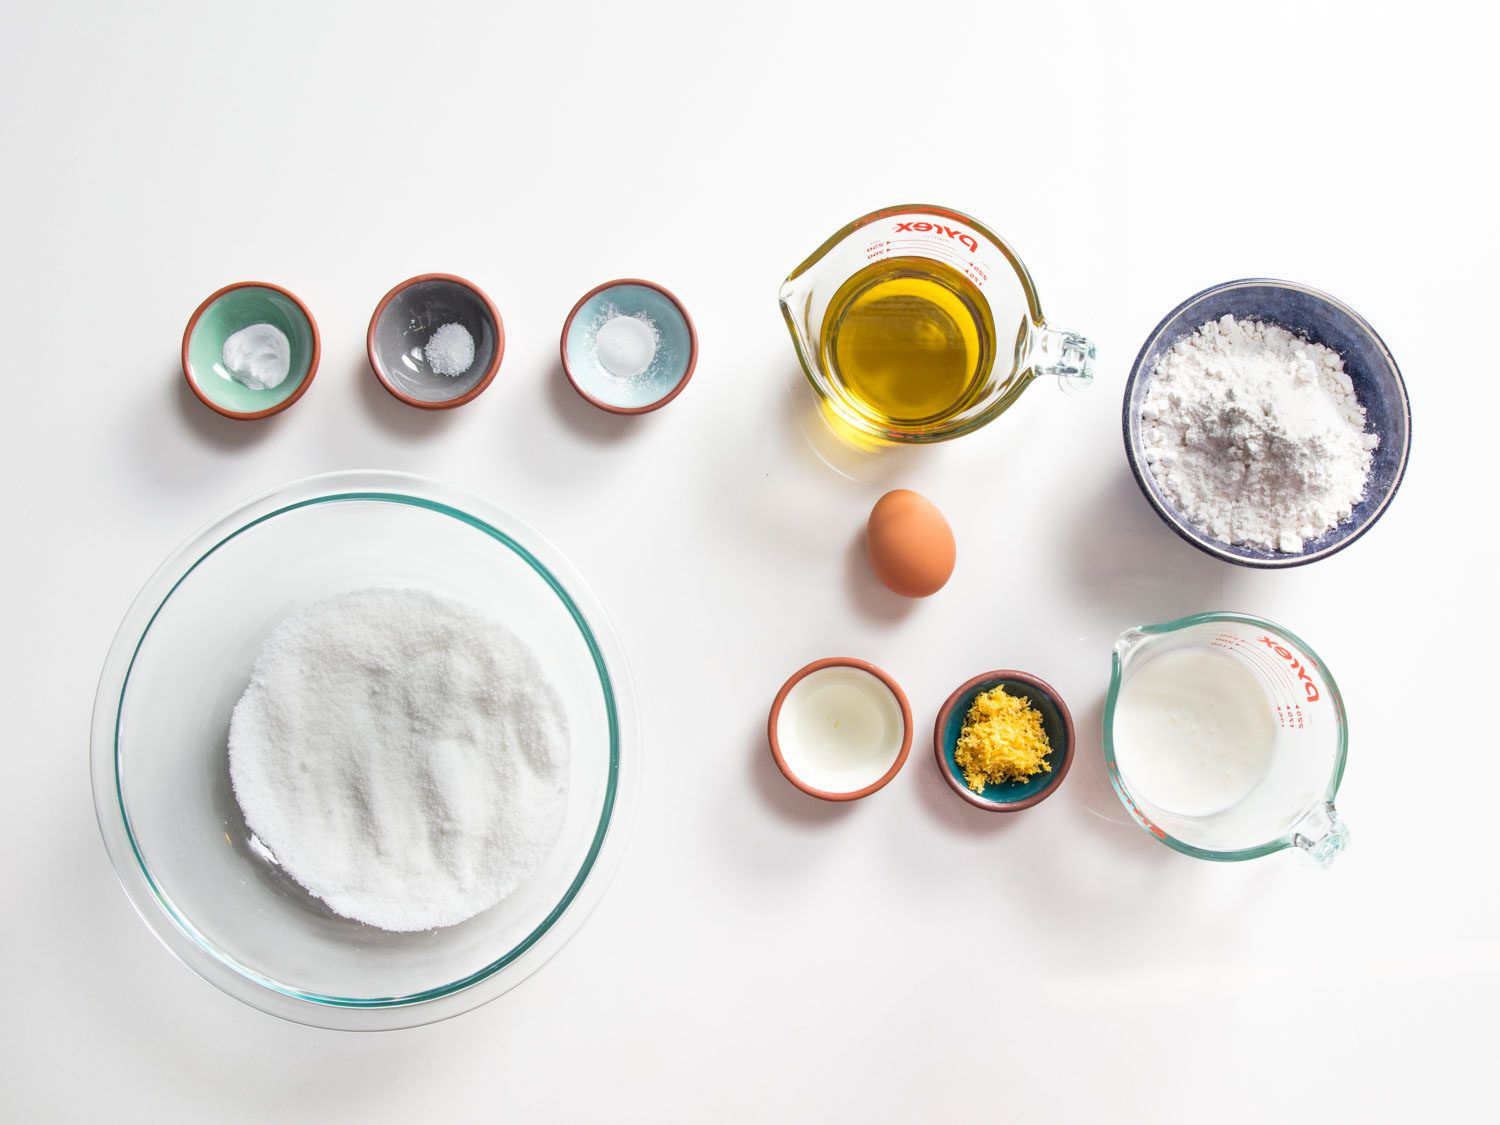 ingredients for the olive oil cake